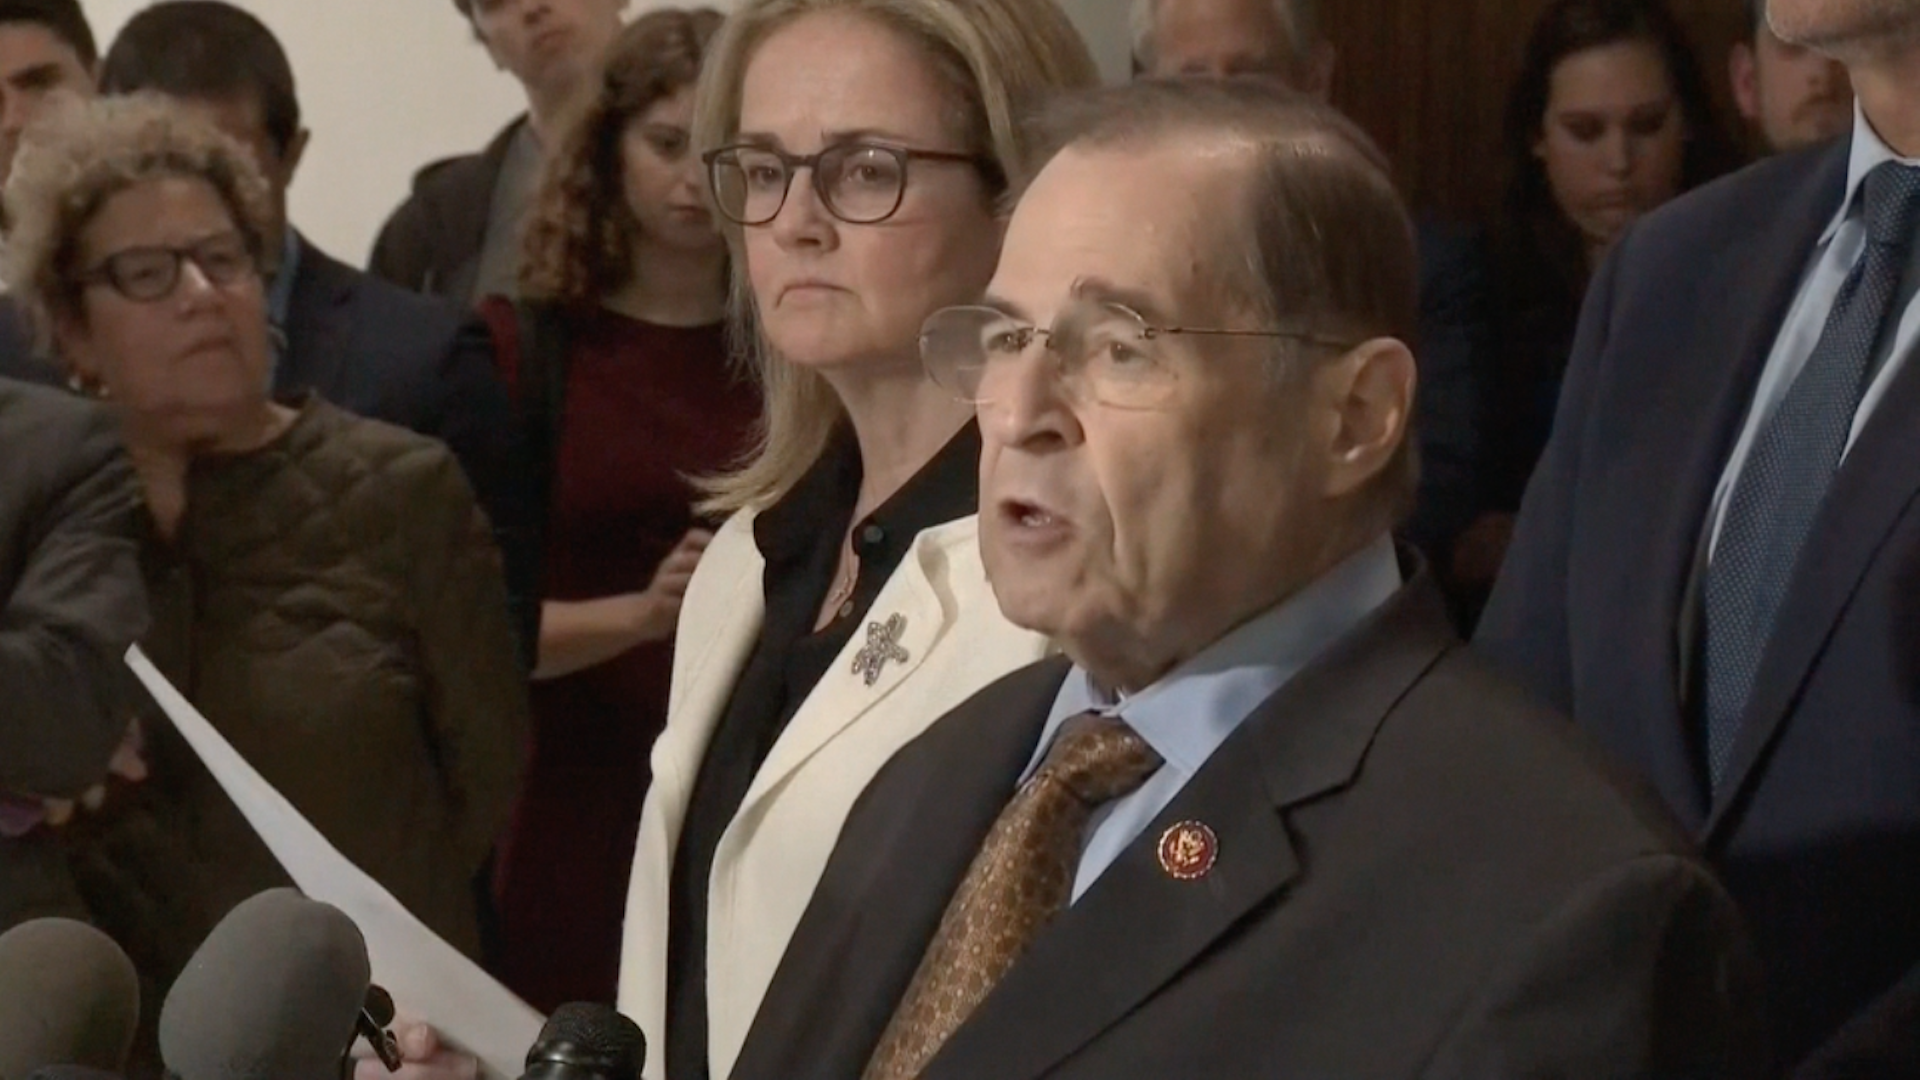 On eve of Mueller report's release, Nadler accuses Barr of protecting Trump